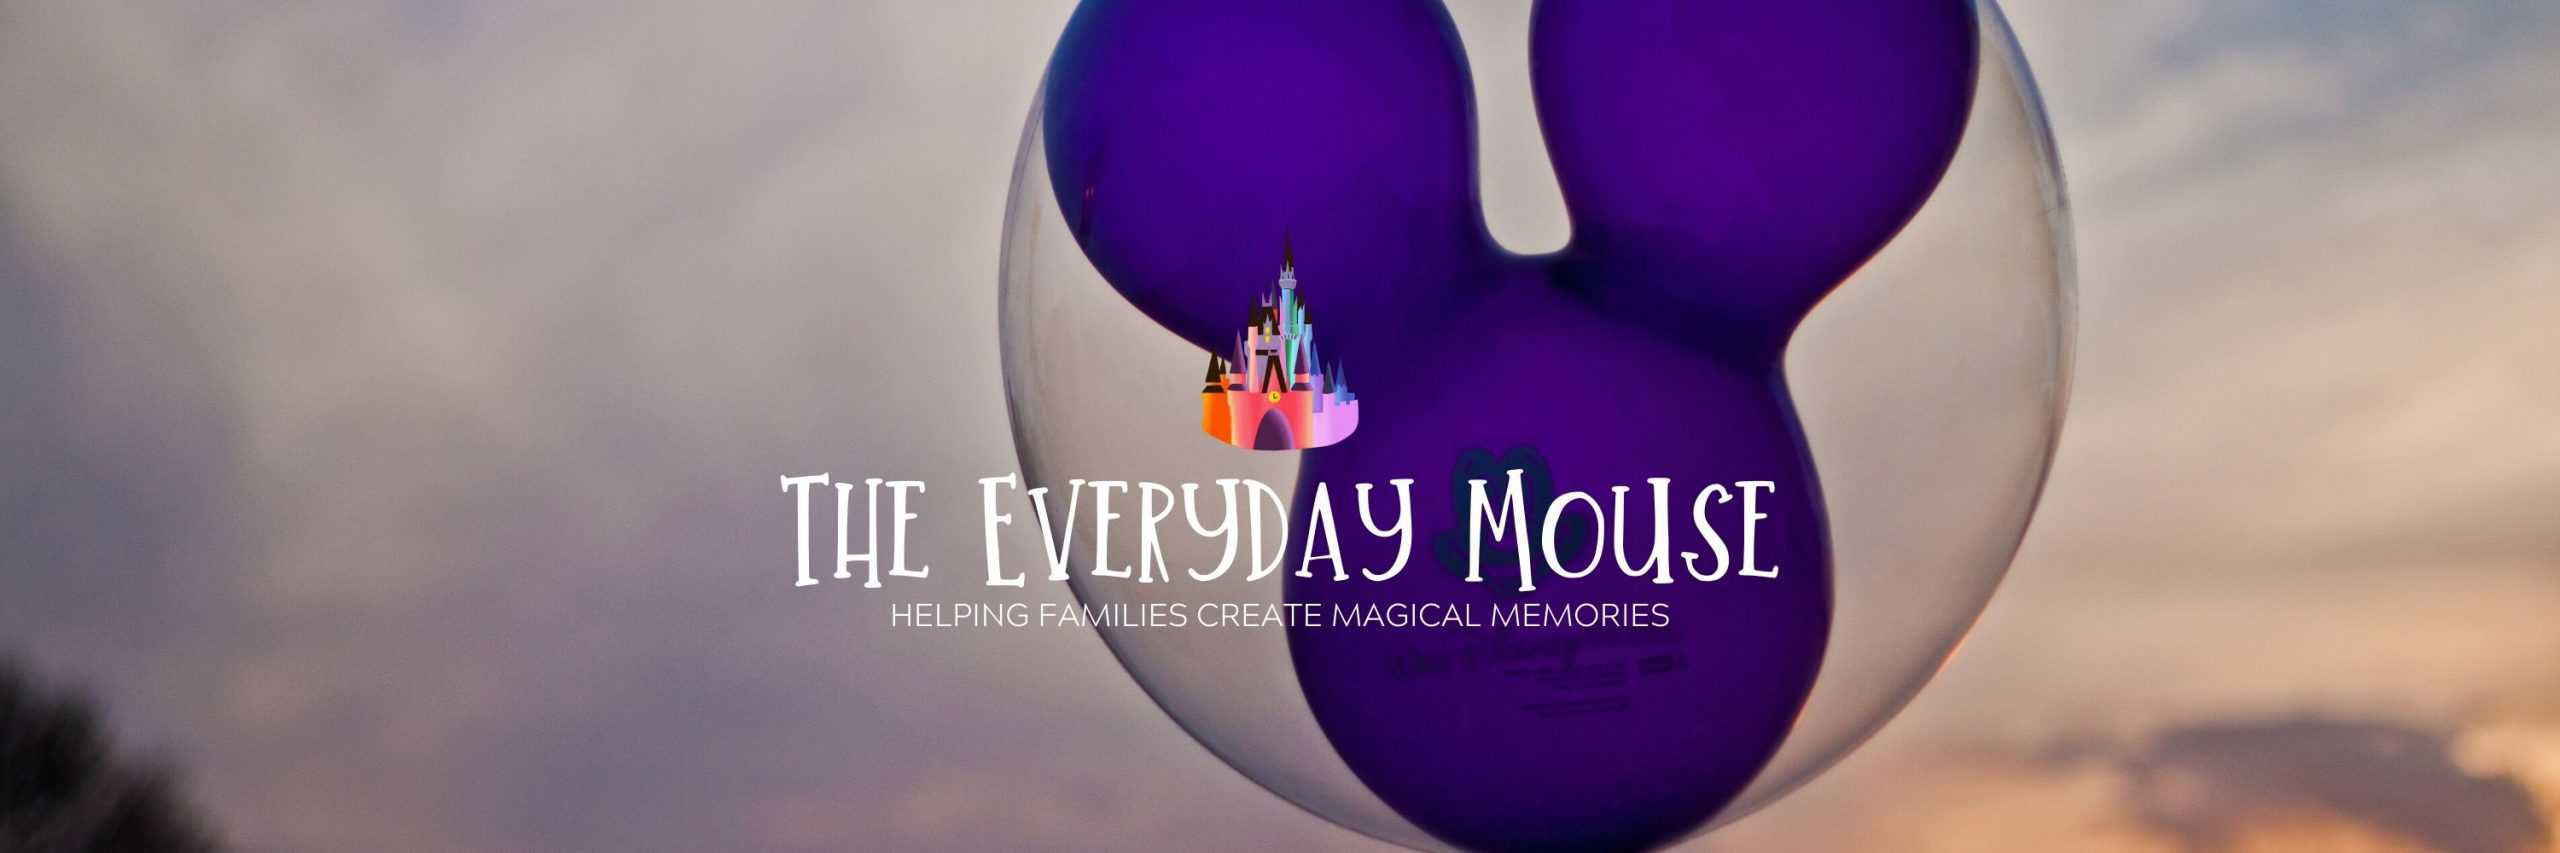 The Everyday Mouse